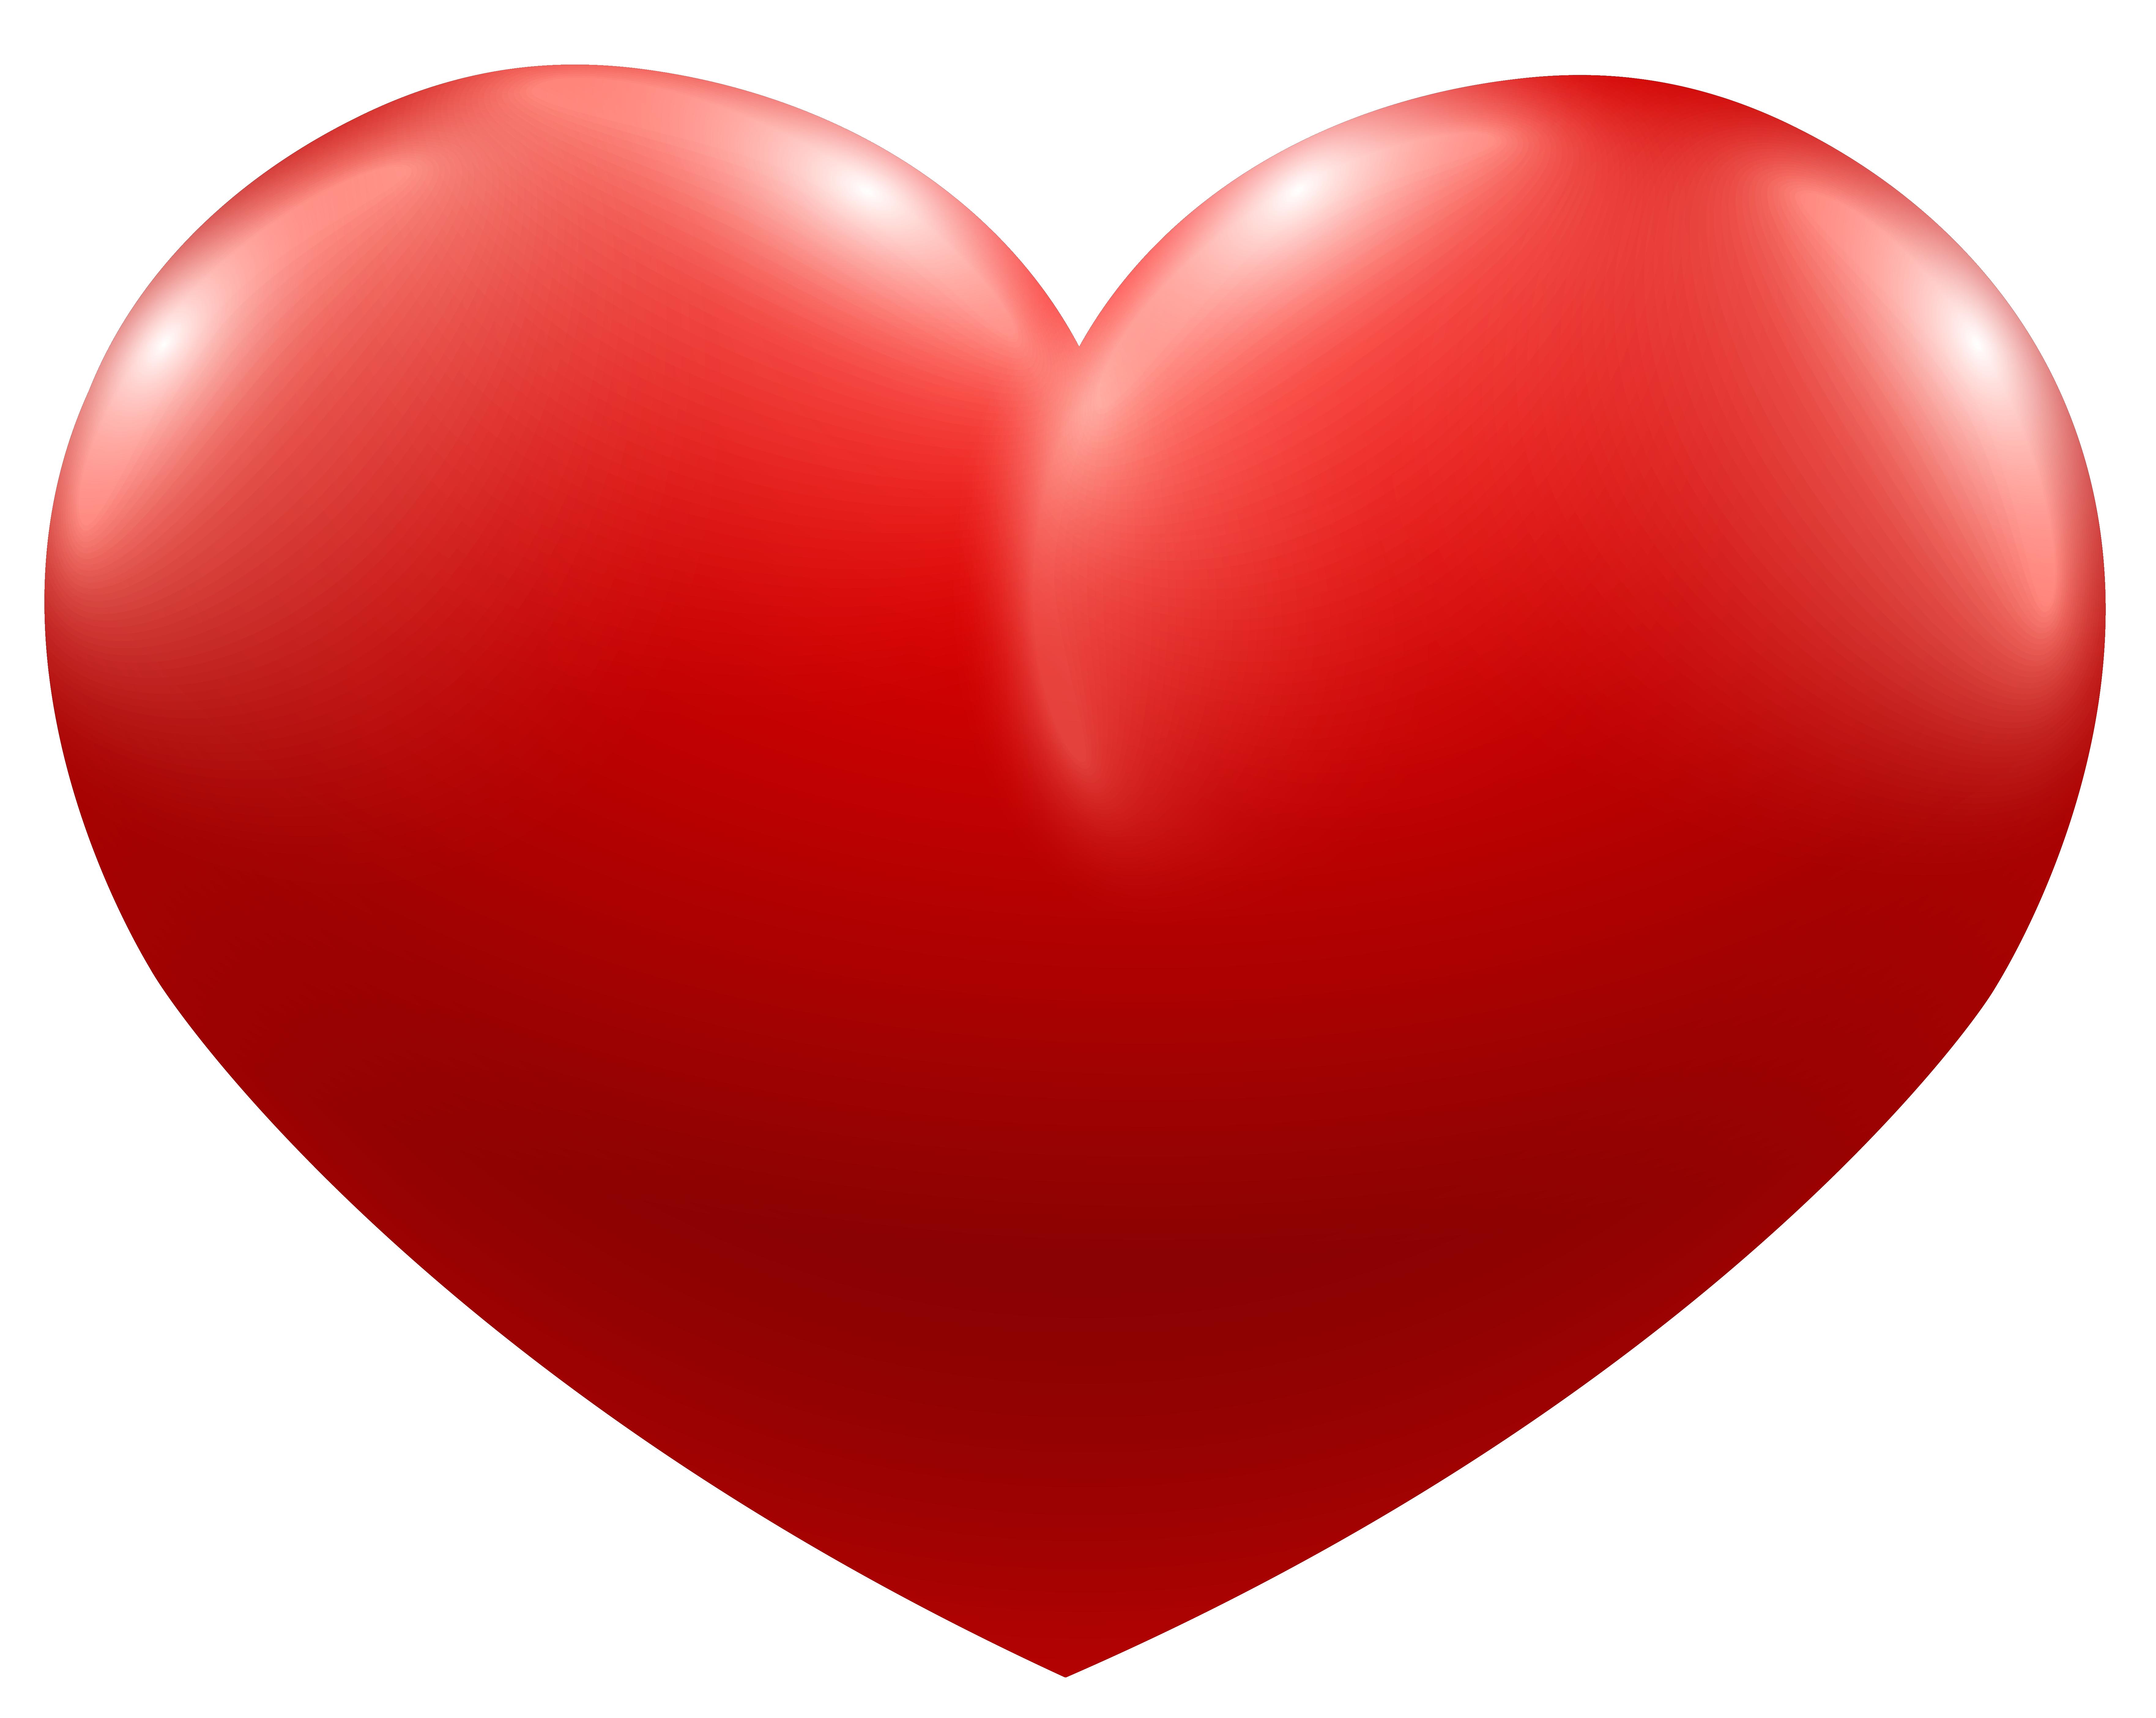 Heart image gallery yopriceville. Red hearts png